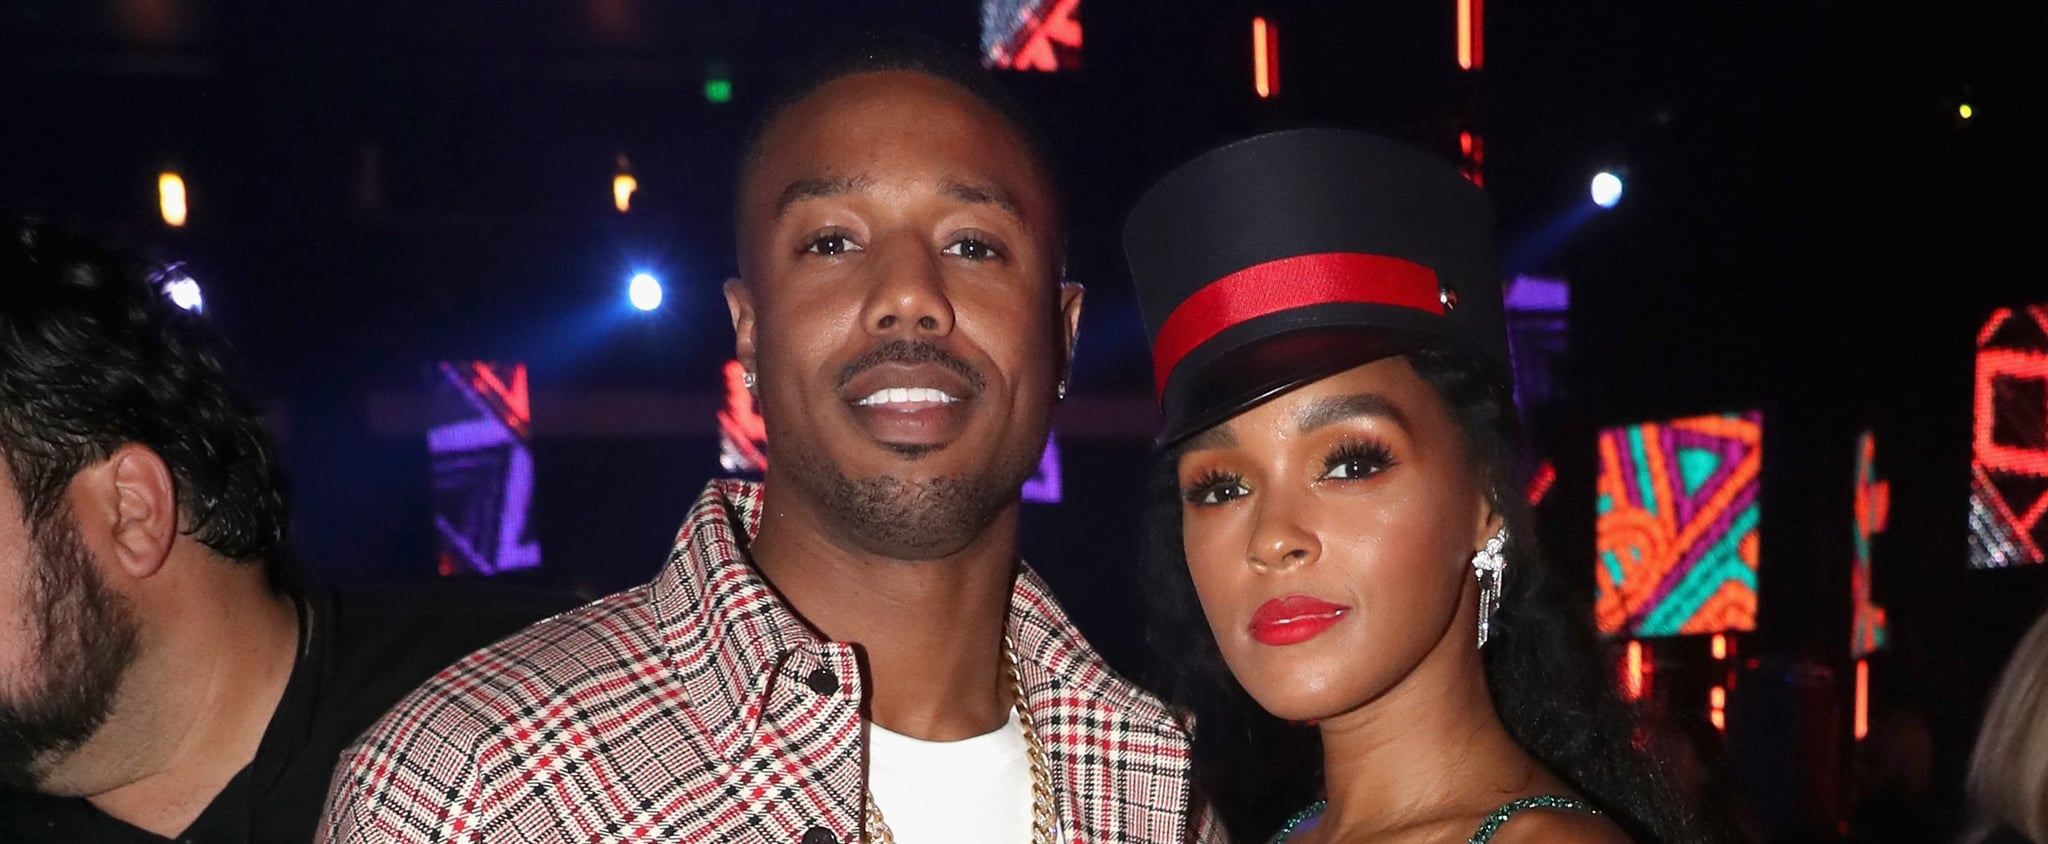 Best Pictures From the 2018 BET Awards